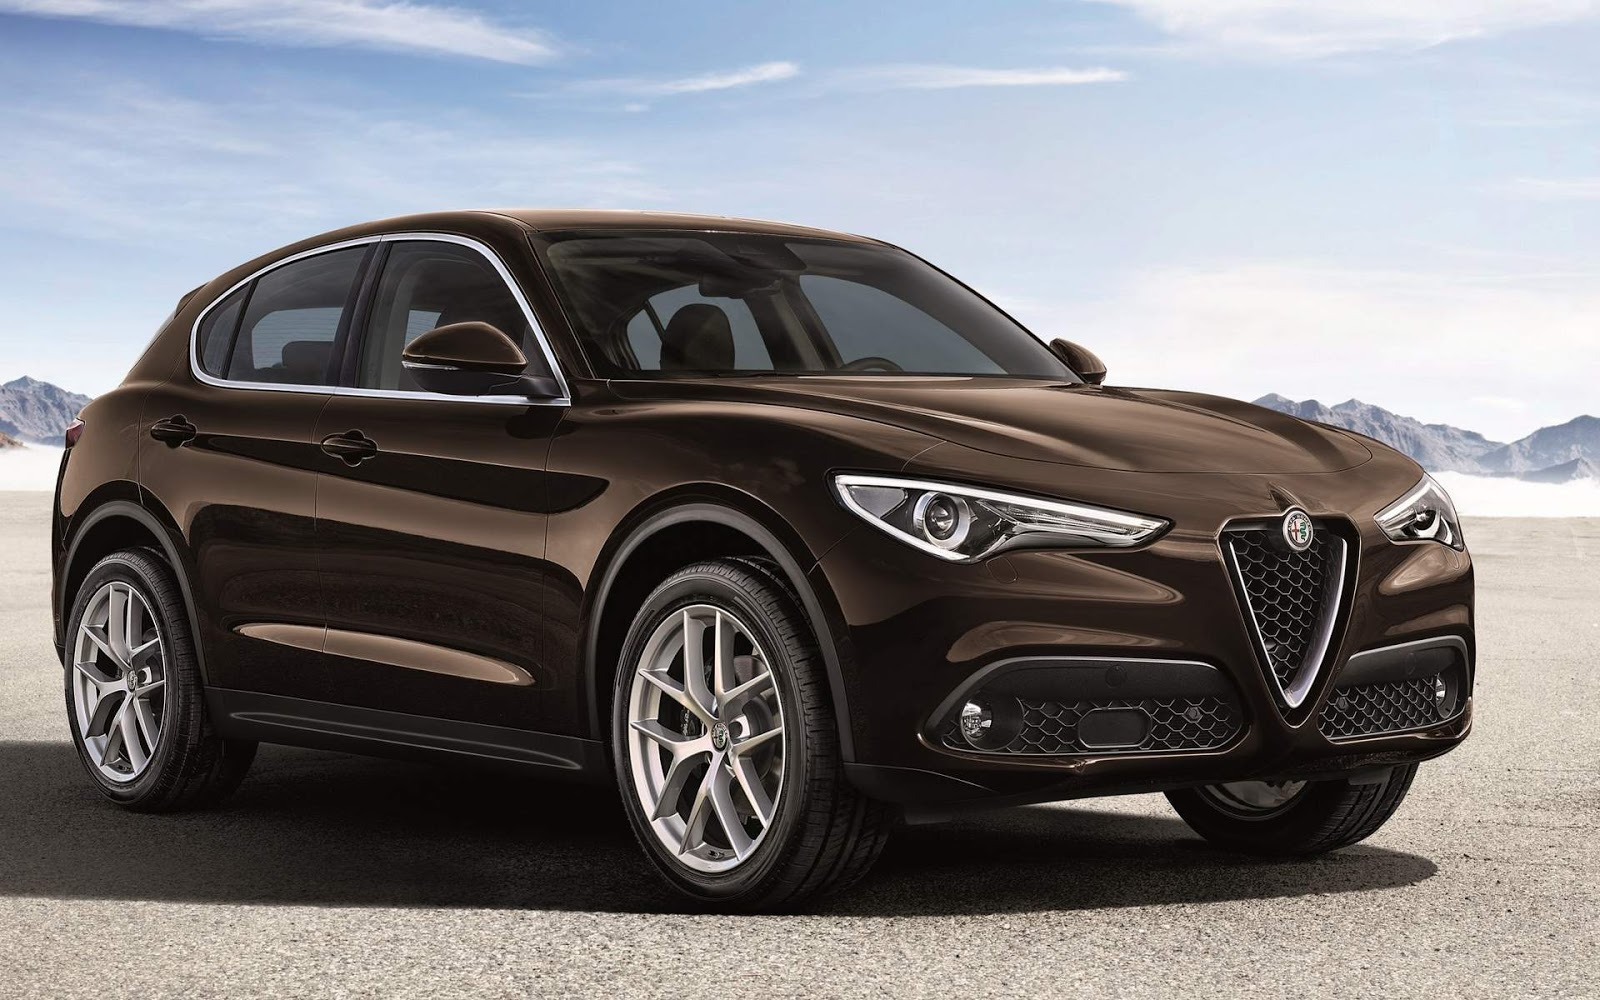 alfa romeo stelvio nova vers o 2 2 diesel com tra o q4 car blog br. Black Bedroom Furniture Sets. Home Design Ideas